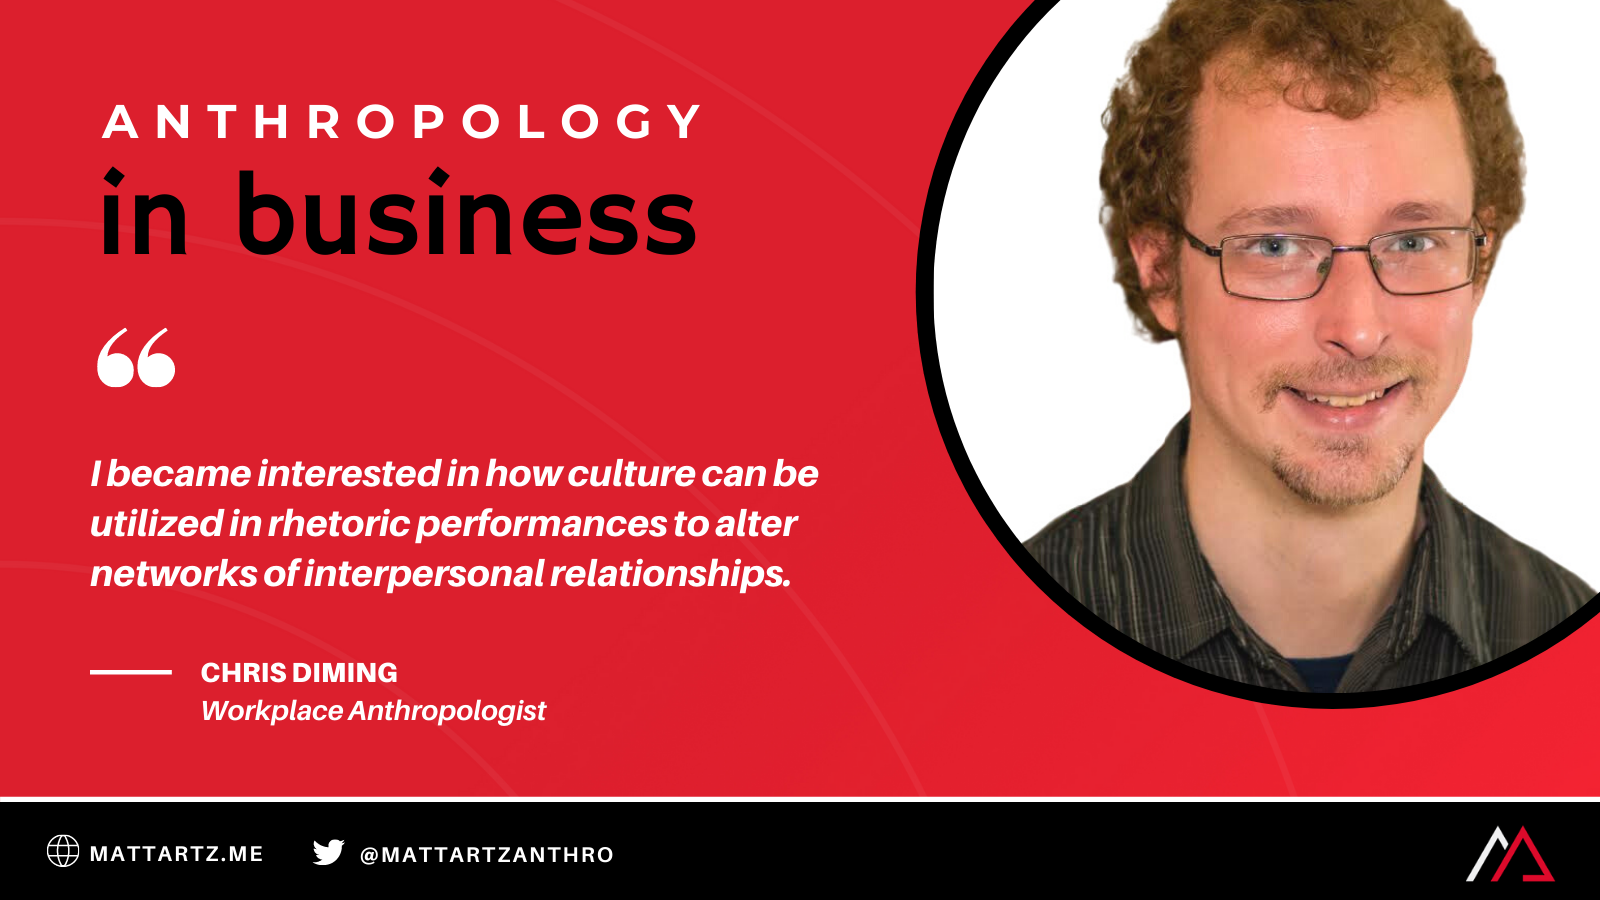 Chris Diming on the Anthropology in Business podcast with Matt Artz